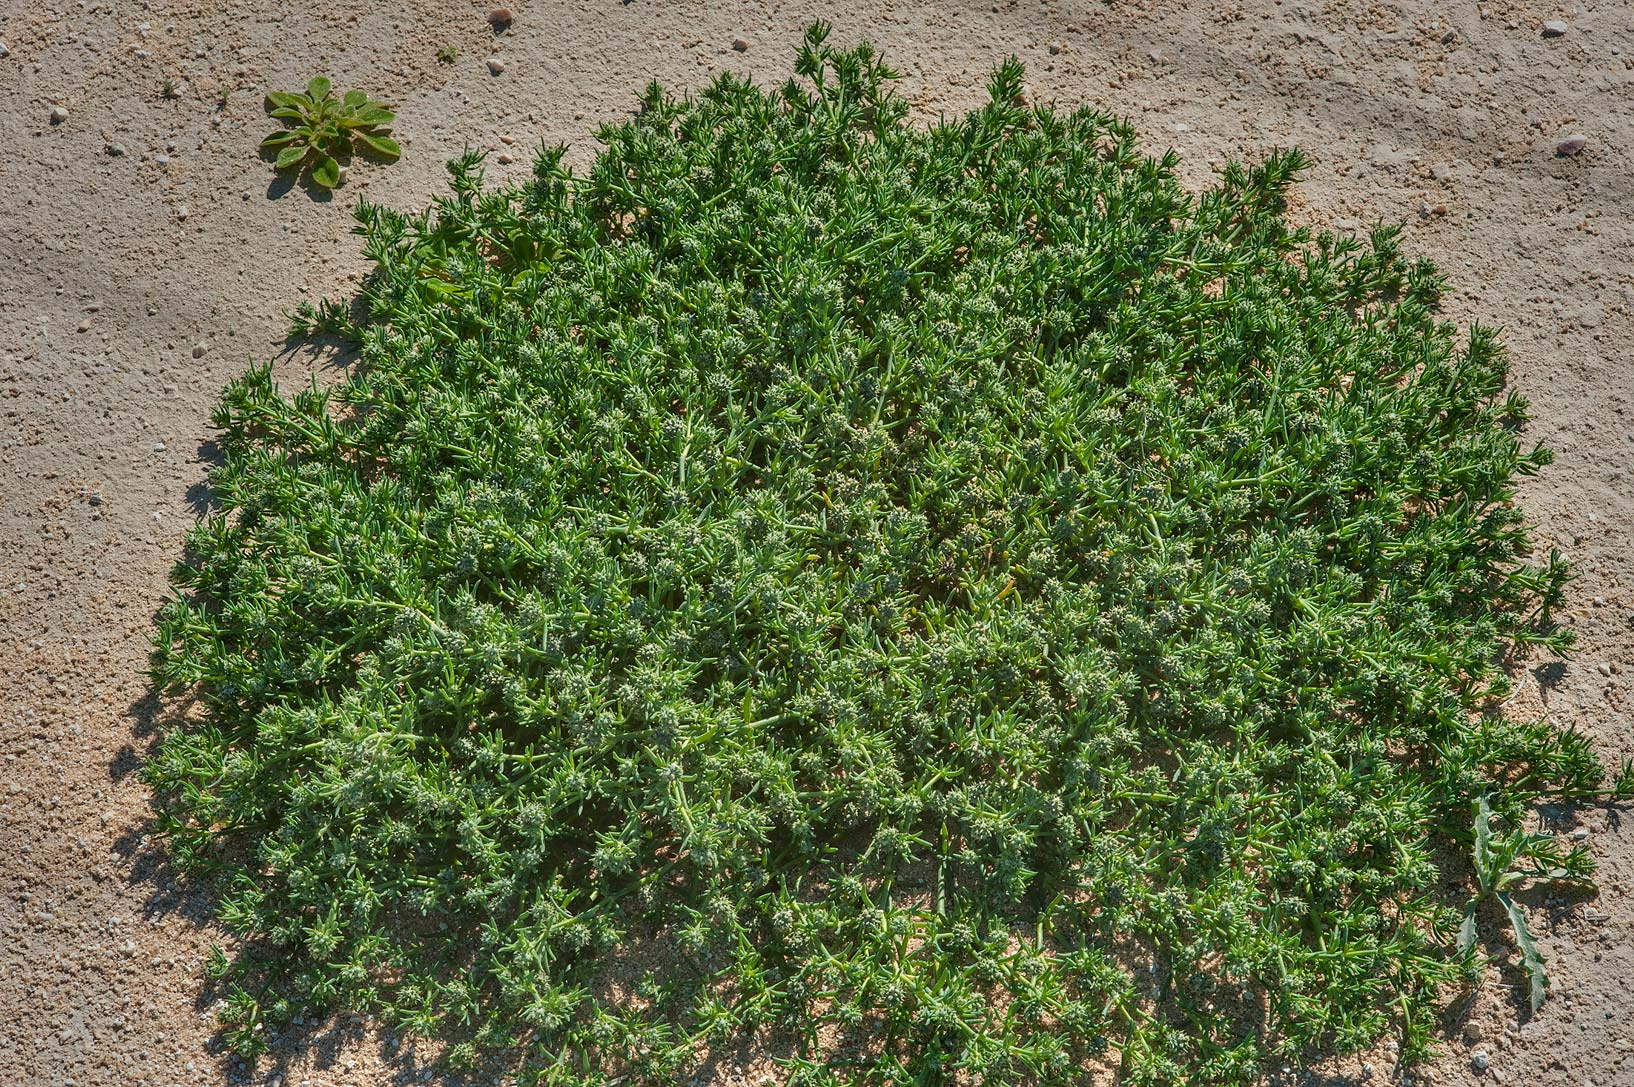 Mat of Knucklehead Weed (Sclerocephalus arabicus...depression near Dukhan Highway. Qatar